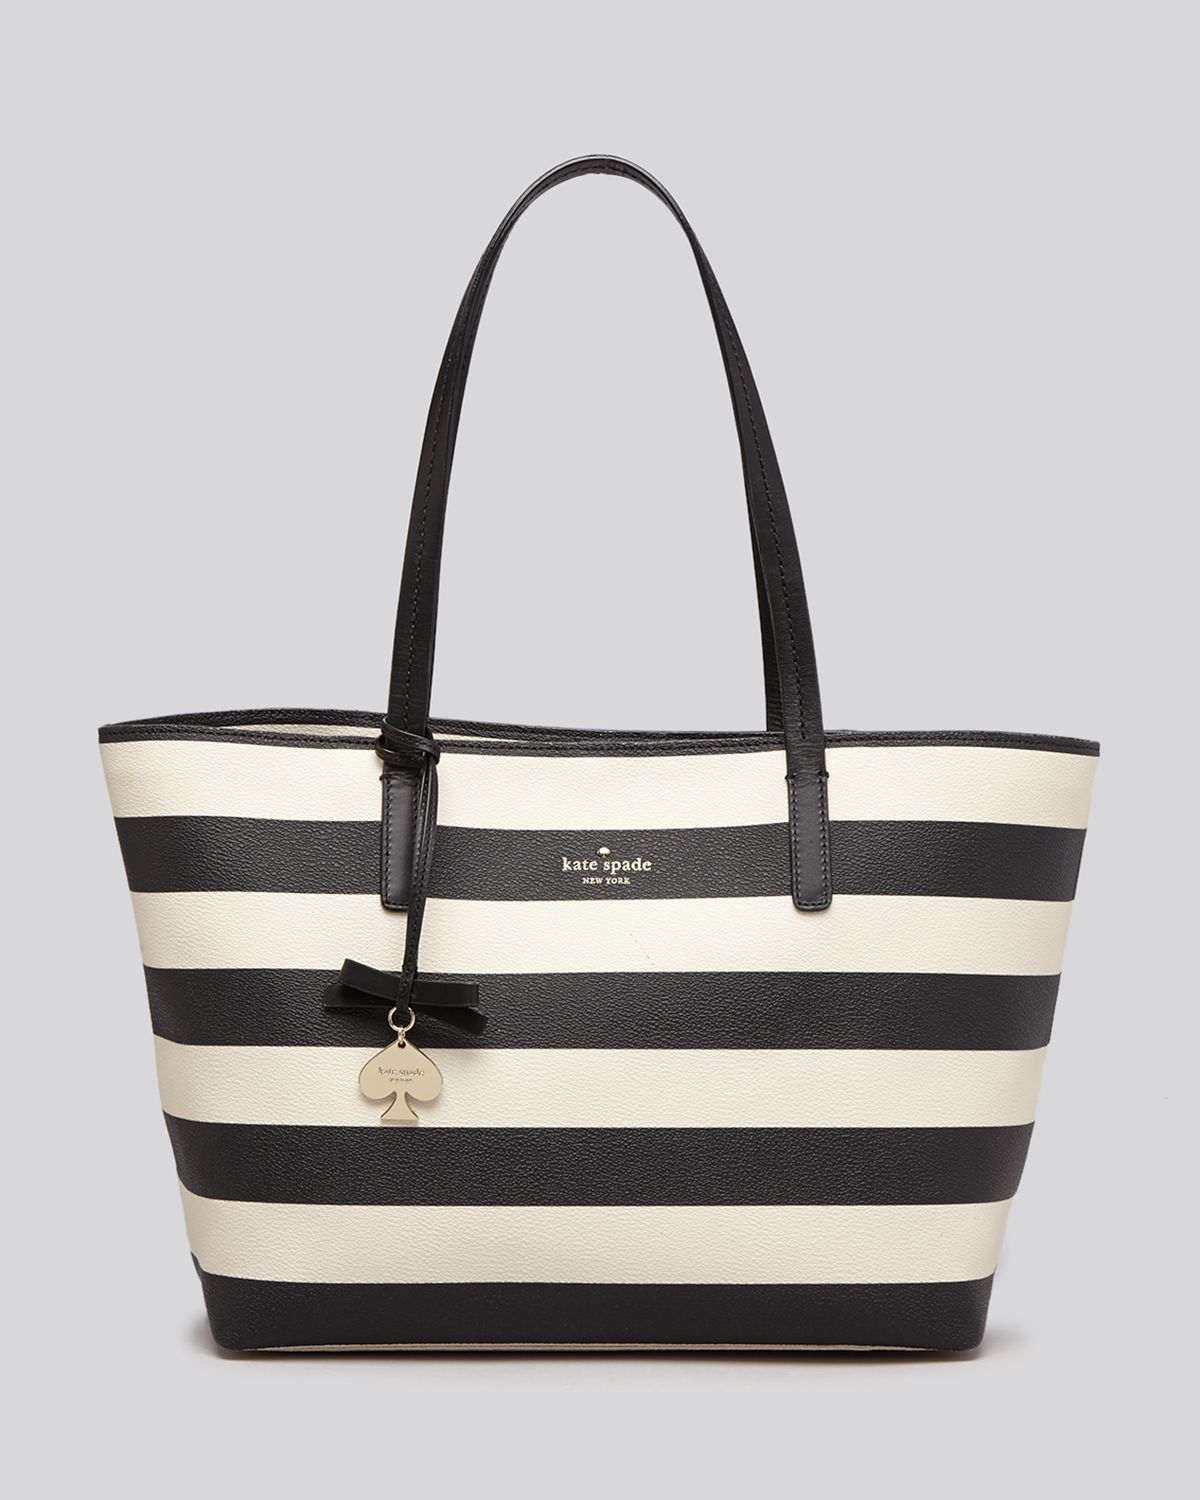 Kate Spade is a high-end designer clothing and accessories brand. Whether you're looking for a Kate Spade handbag, wallet, diaper bag or a stylish new pair of shoes, you'll always find on-trend looks from the New York designer.